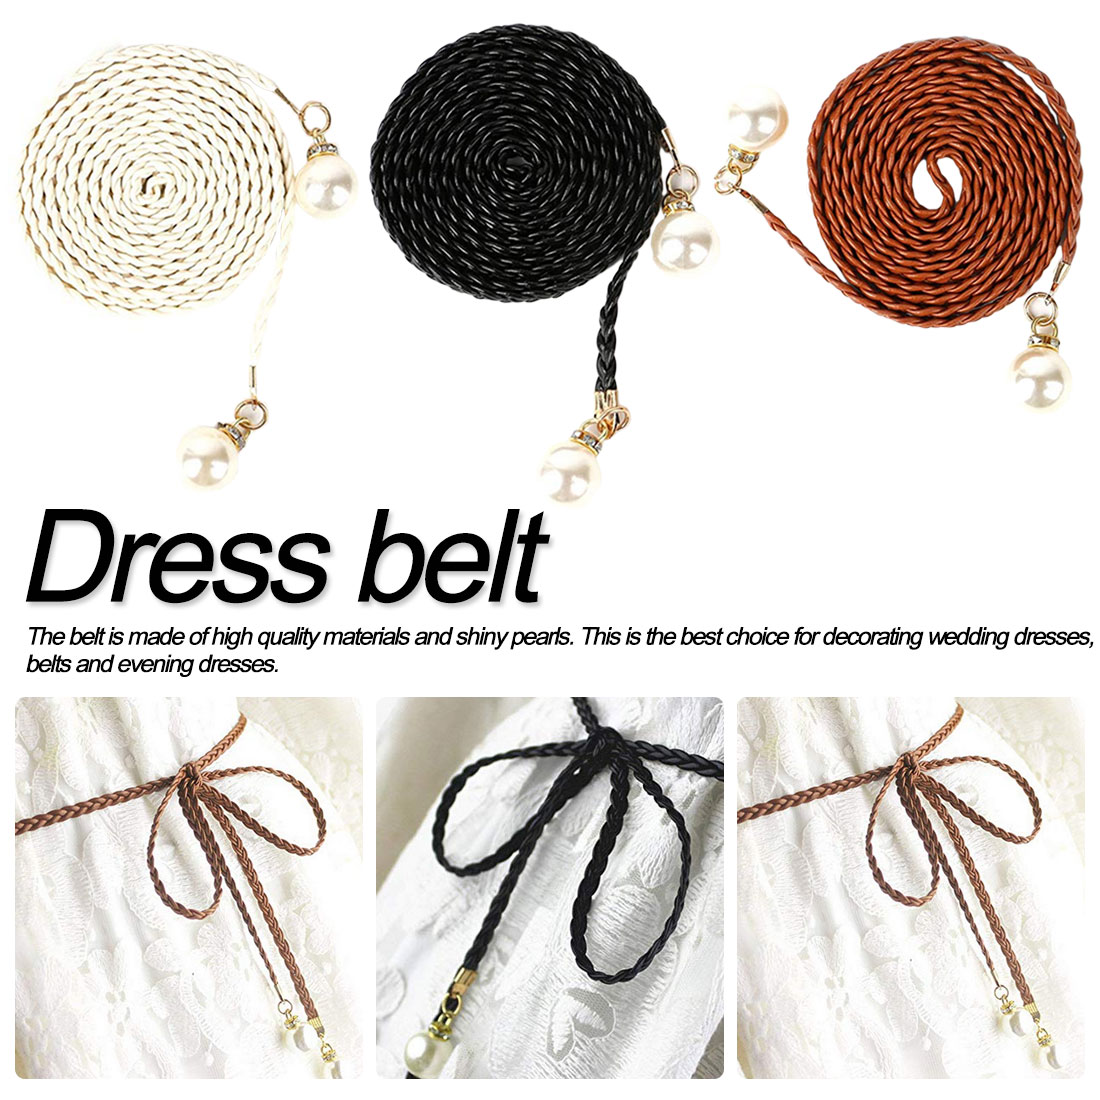 National Style Hot Sell Pearl Knitted Belt New Women 39 s Belt New Style Candy Colors Hemp Rope Braid Belt Female Belt For Dress in Women 39 s Belts from Apparel Accessories